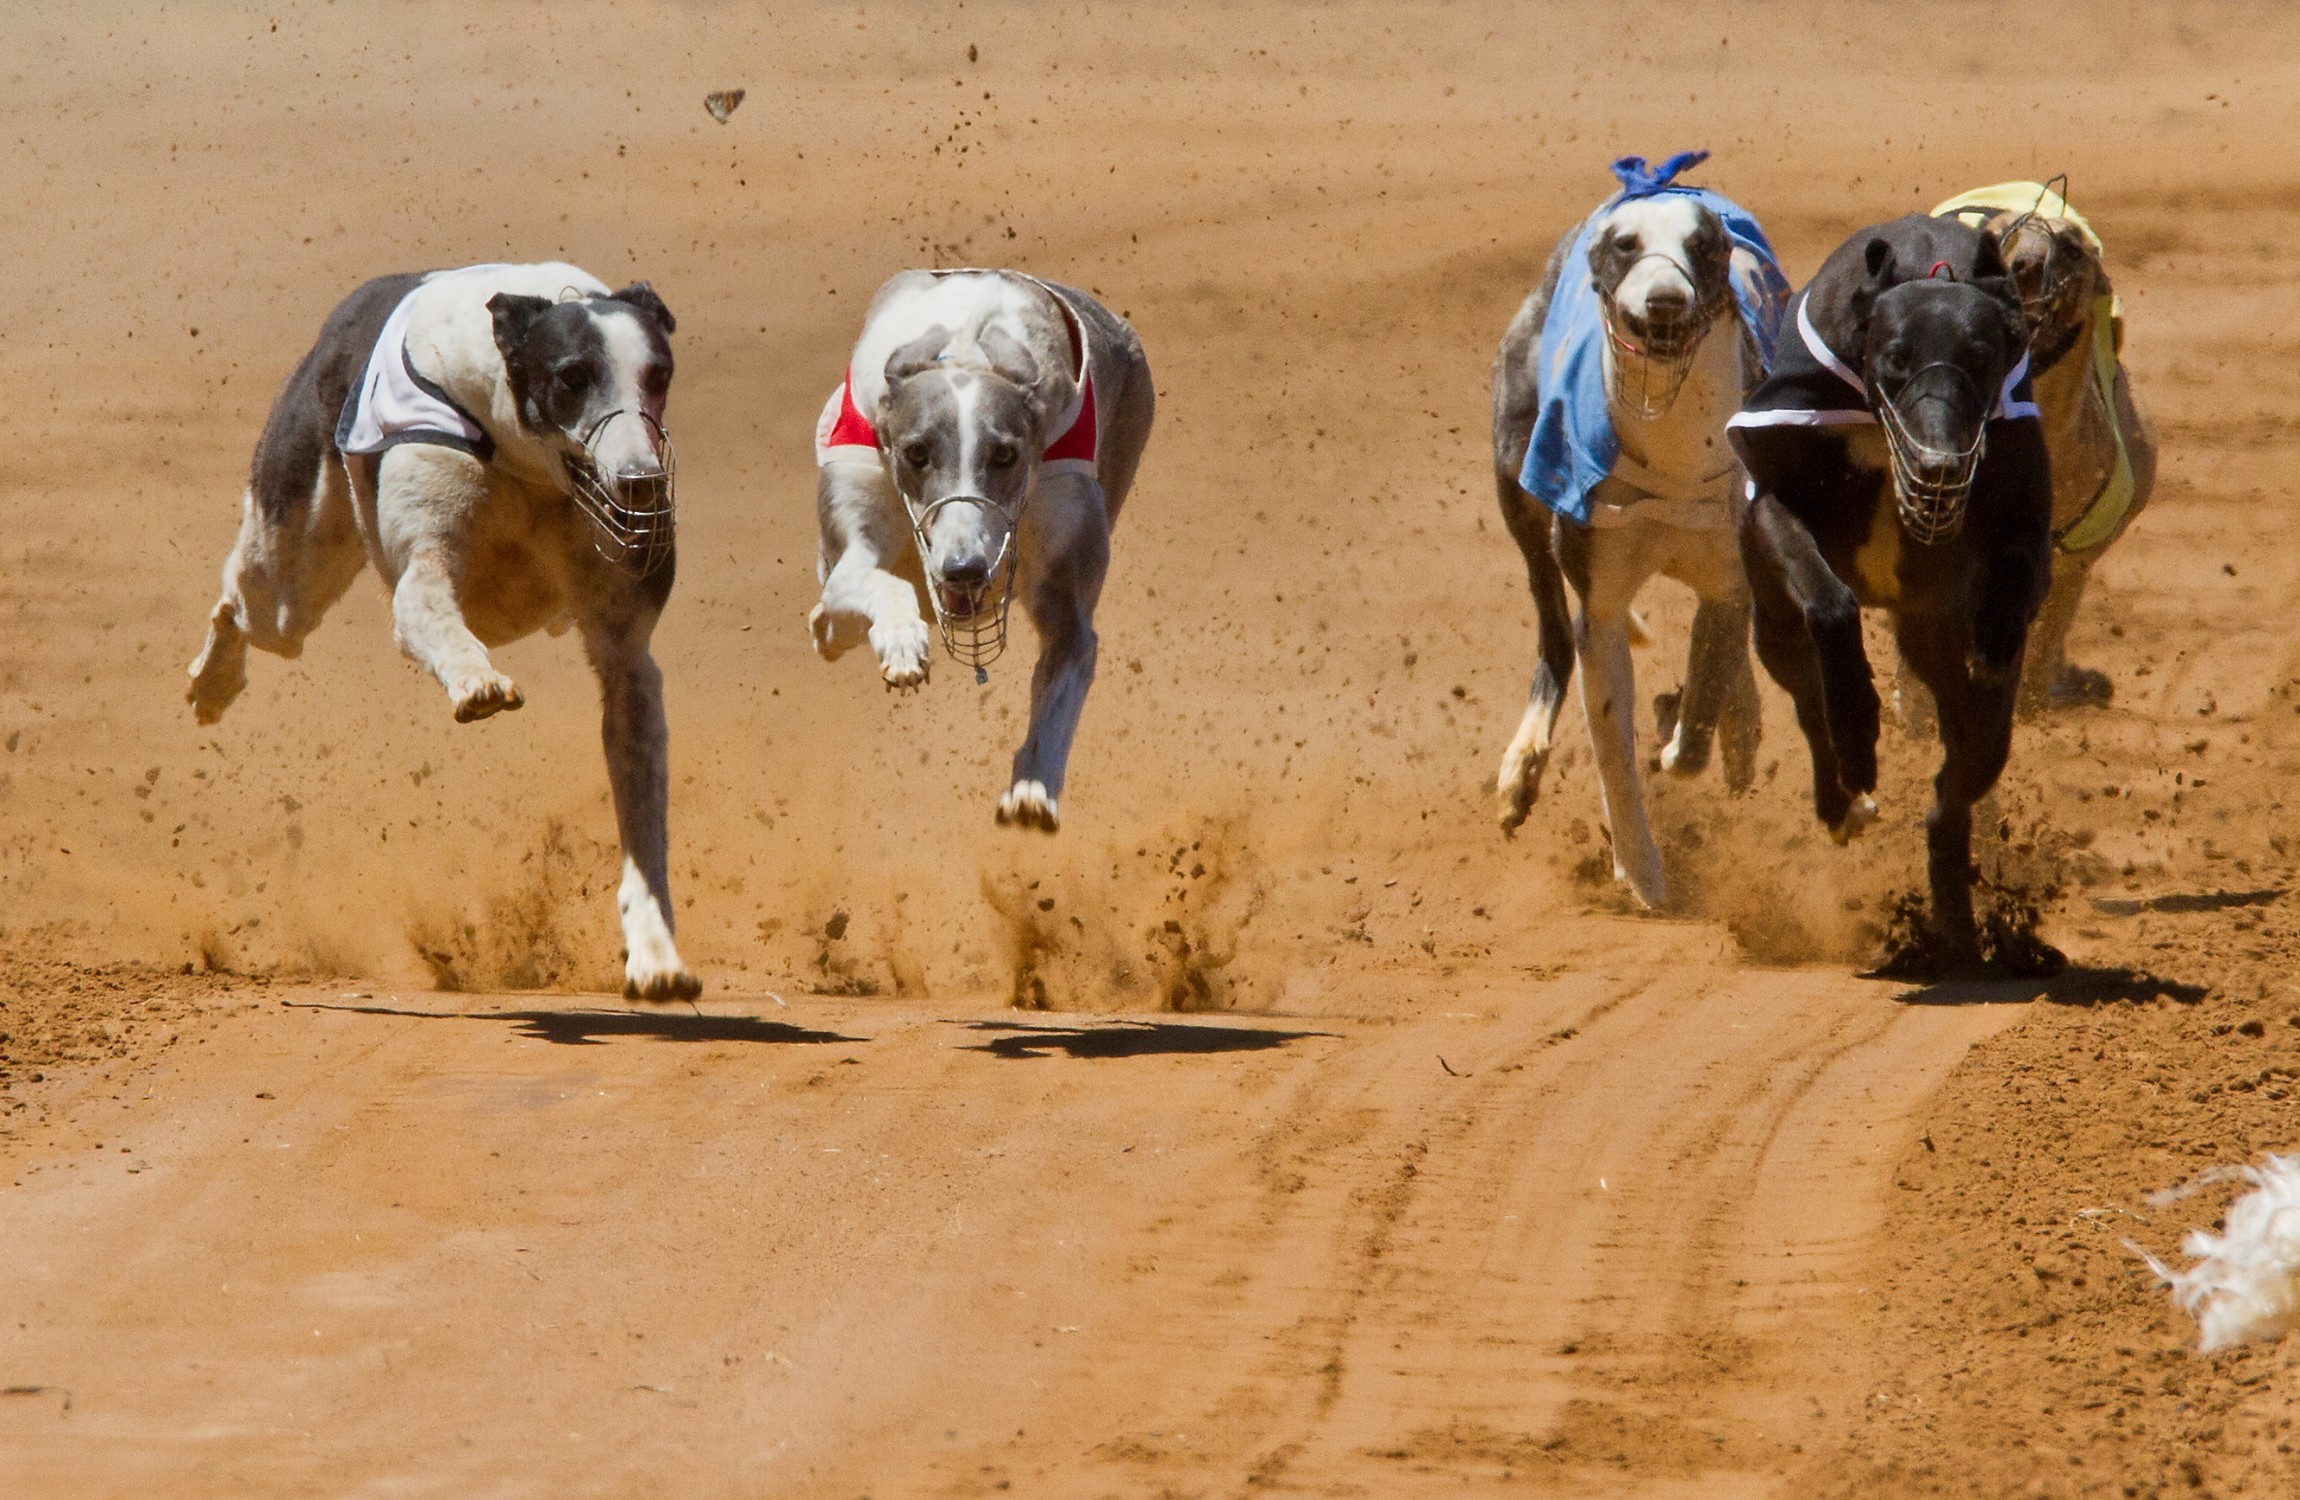 Animal welfare groups are calling for greyhound breeding to be limited to protect dogs.